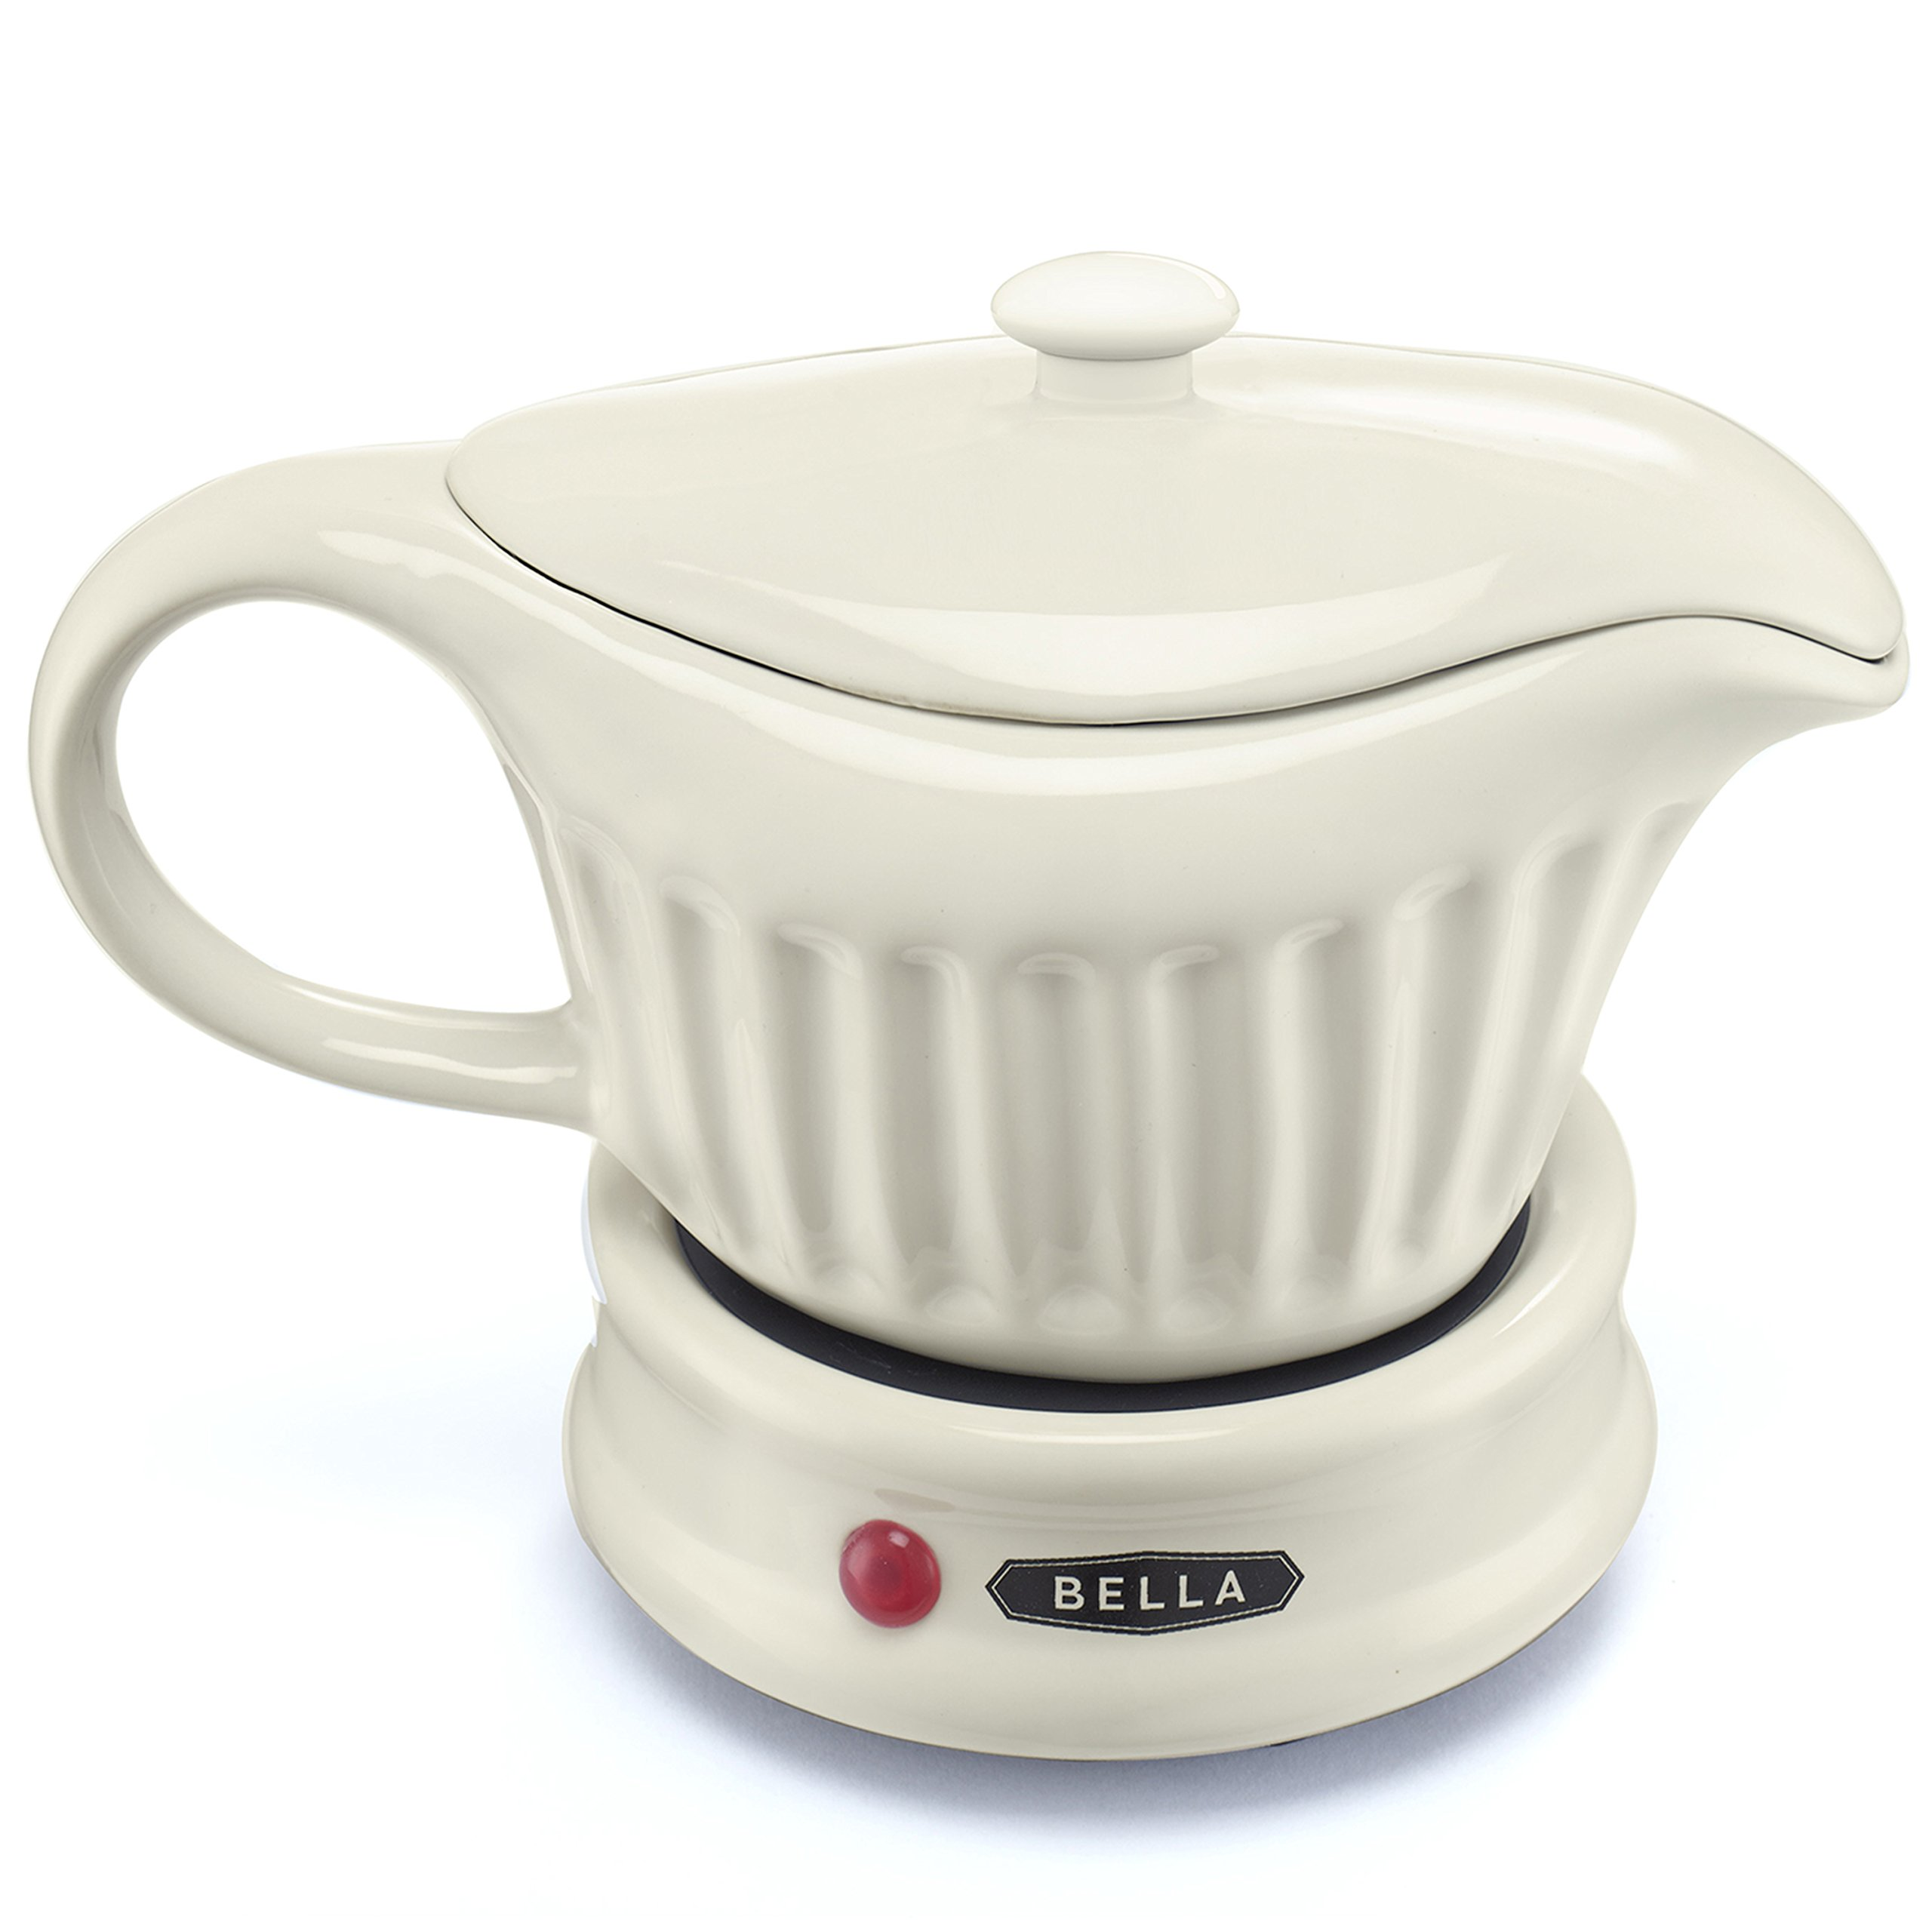 Bella Electric Gravy Boat Warmer Ceramic with Lid Detachable Power Cord 18 Oz